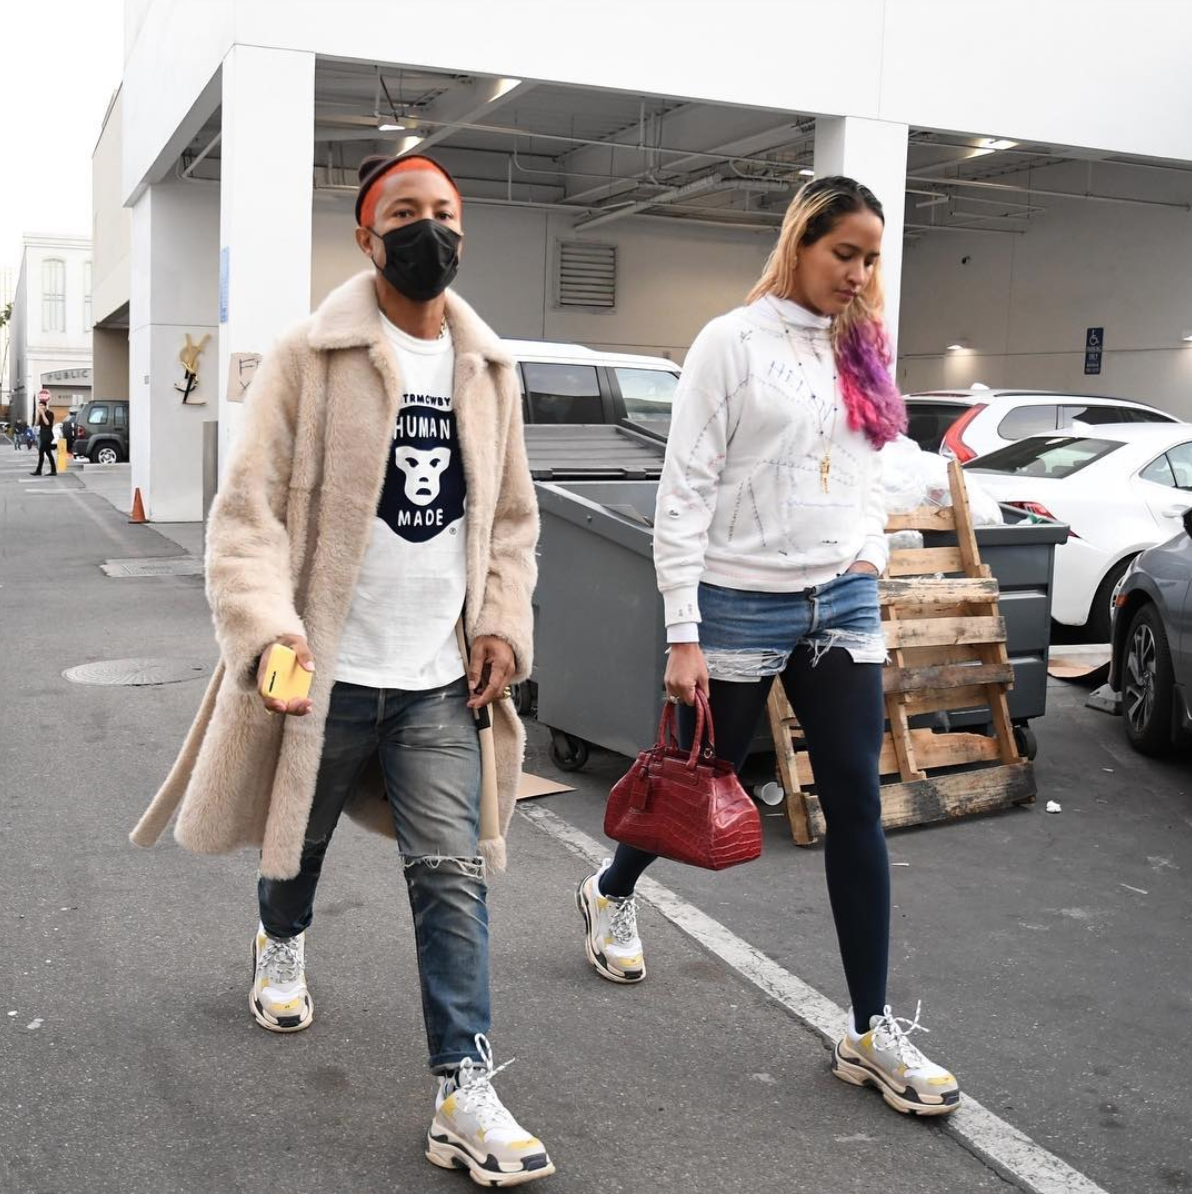 SPOTTED: Pharrell Williams Shopping In Celine Coat & Balenciaga Sneakers